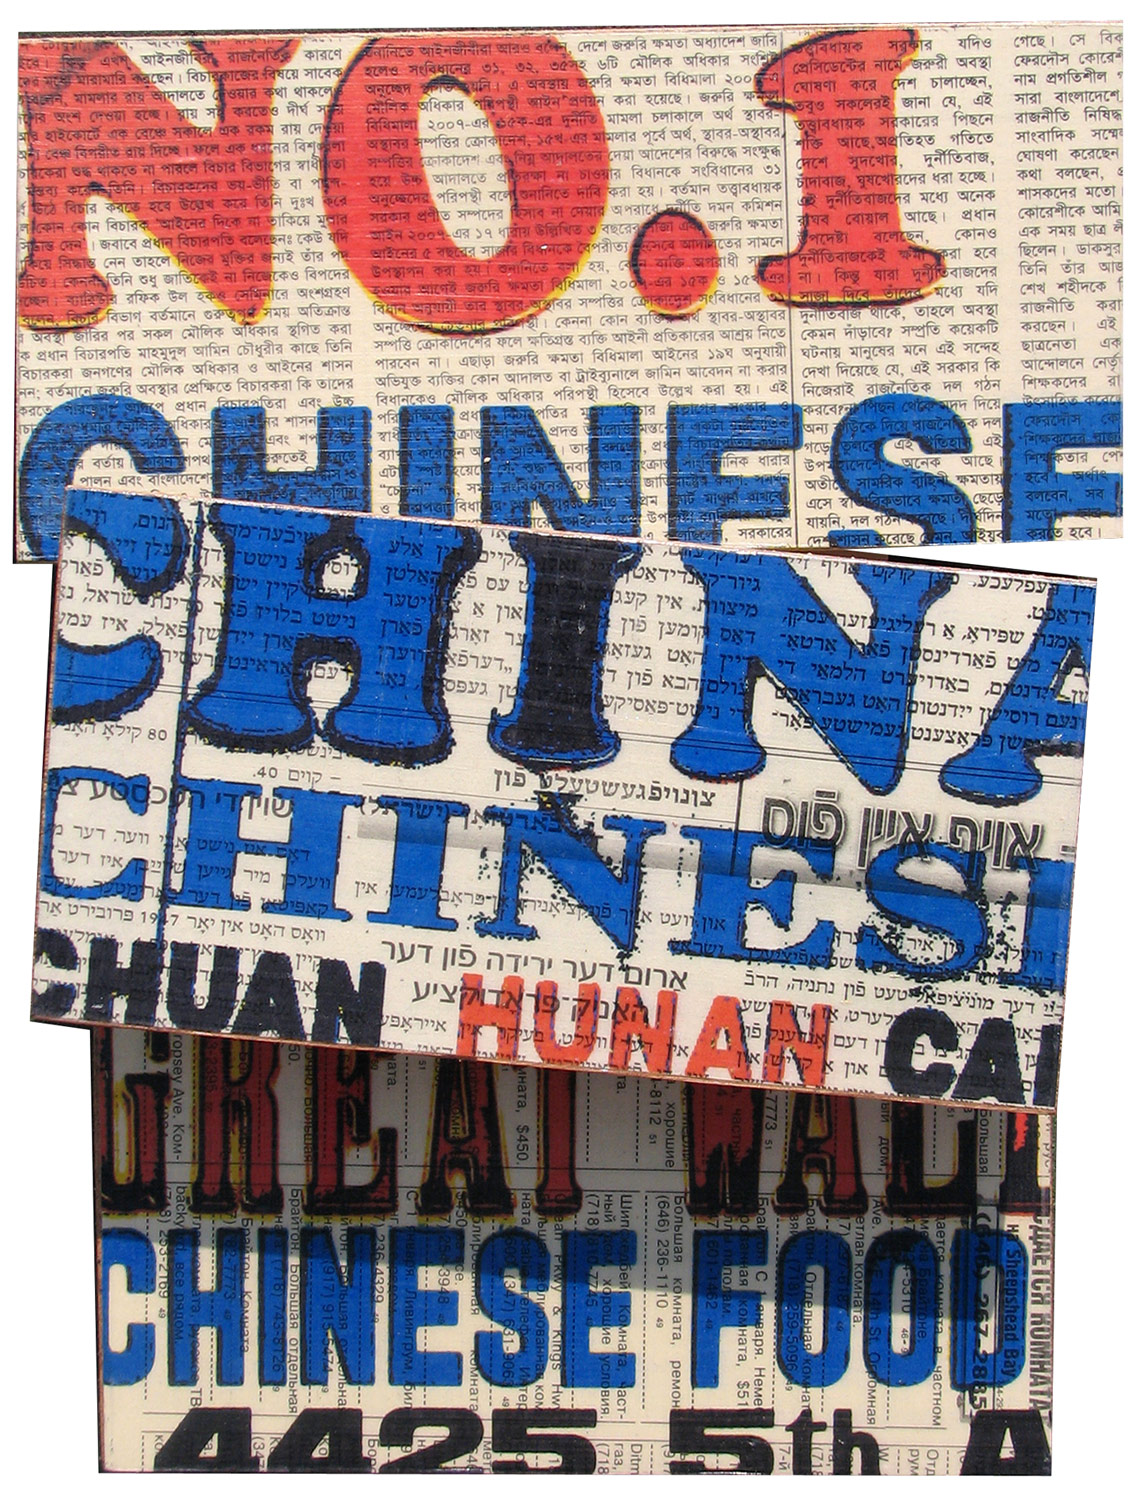 """No. 1 Chinese (2008), 'U Pick 'Em I Stick Em' mixed media photographic collage on salvaged plywood, 12""""x8"""", private collection, Brooklyn, NY"""